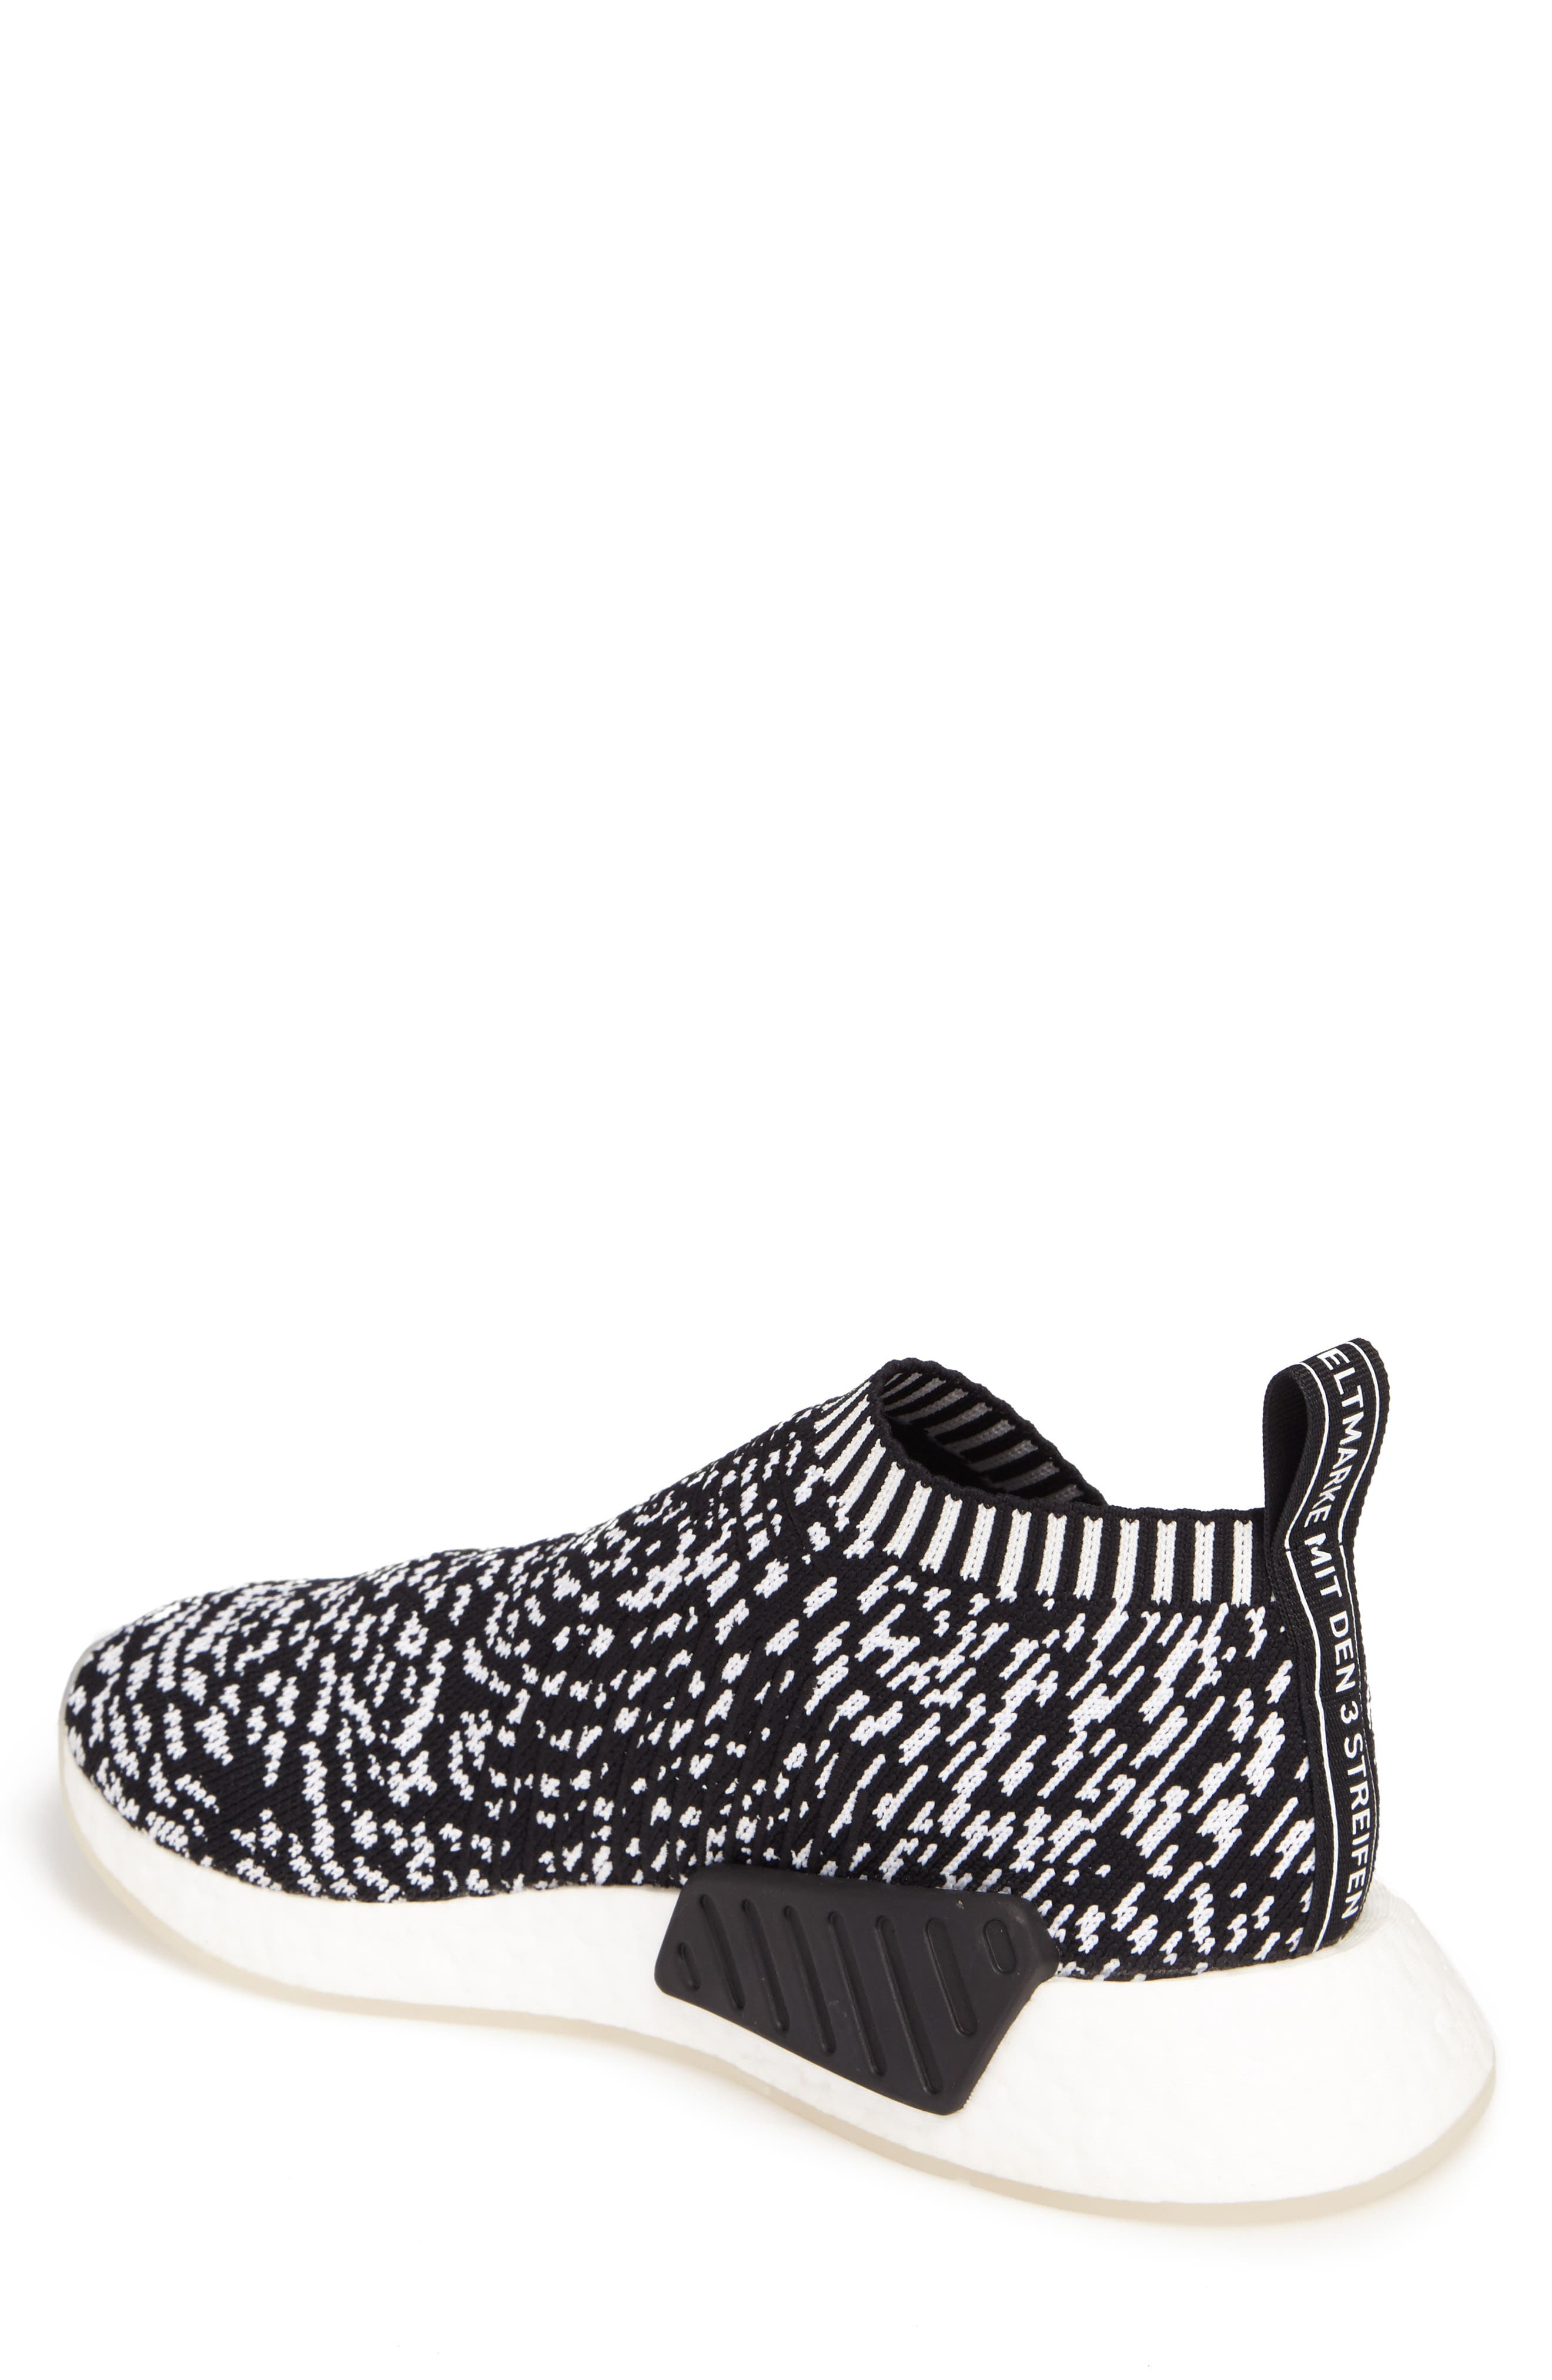 NMD_CS2 Primeknit Sneaker,                             Alternate thumbnail 2, color,